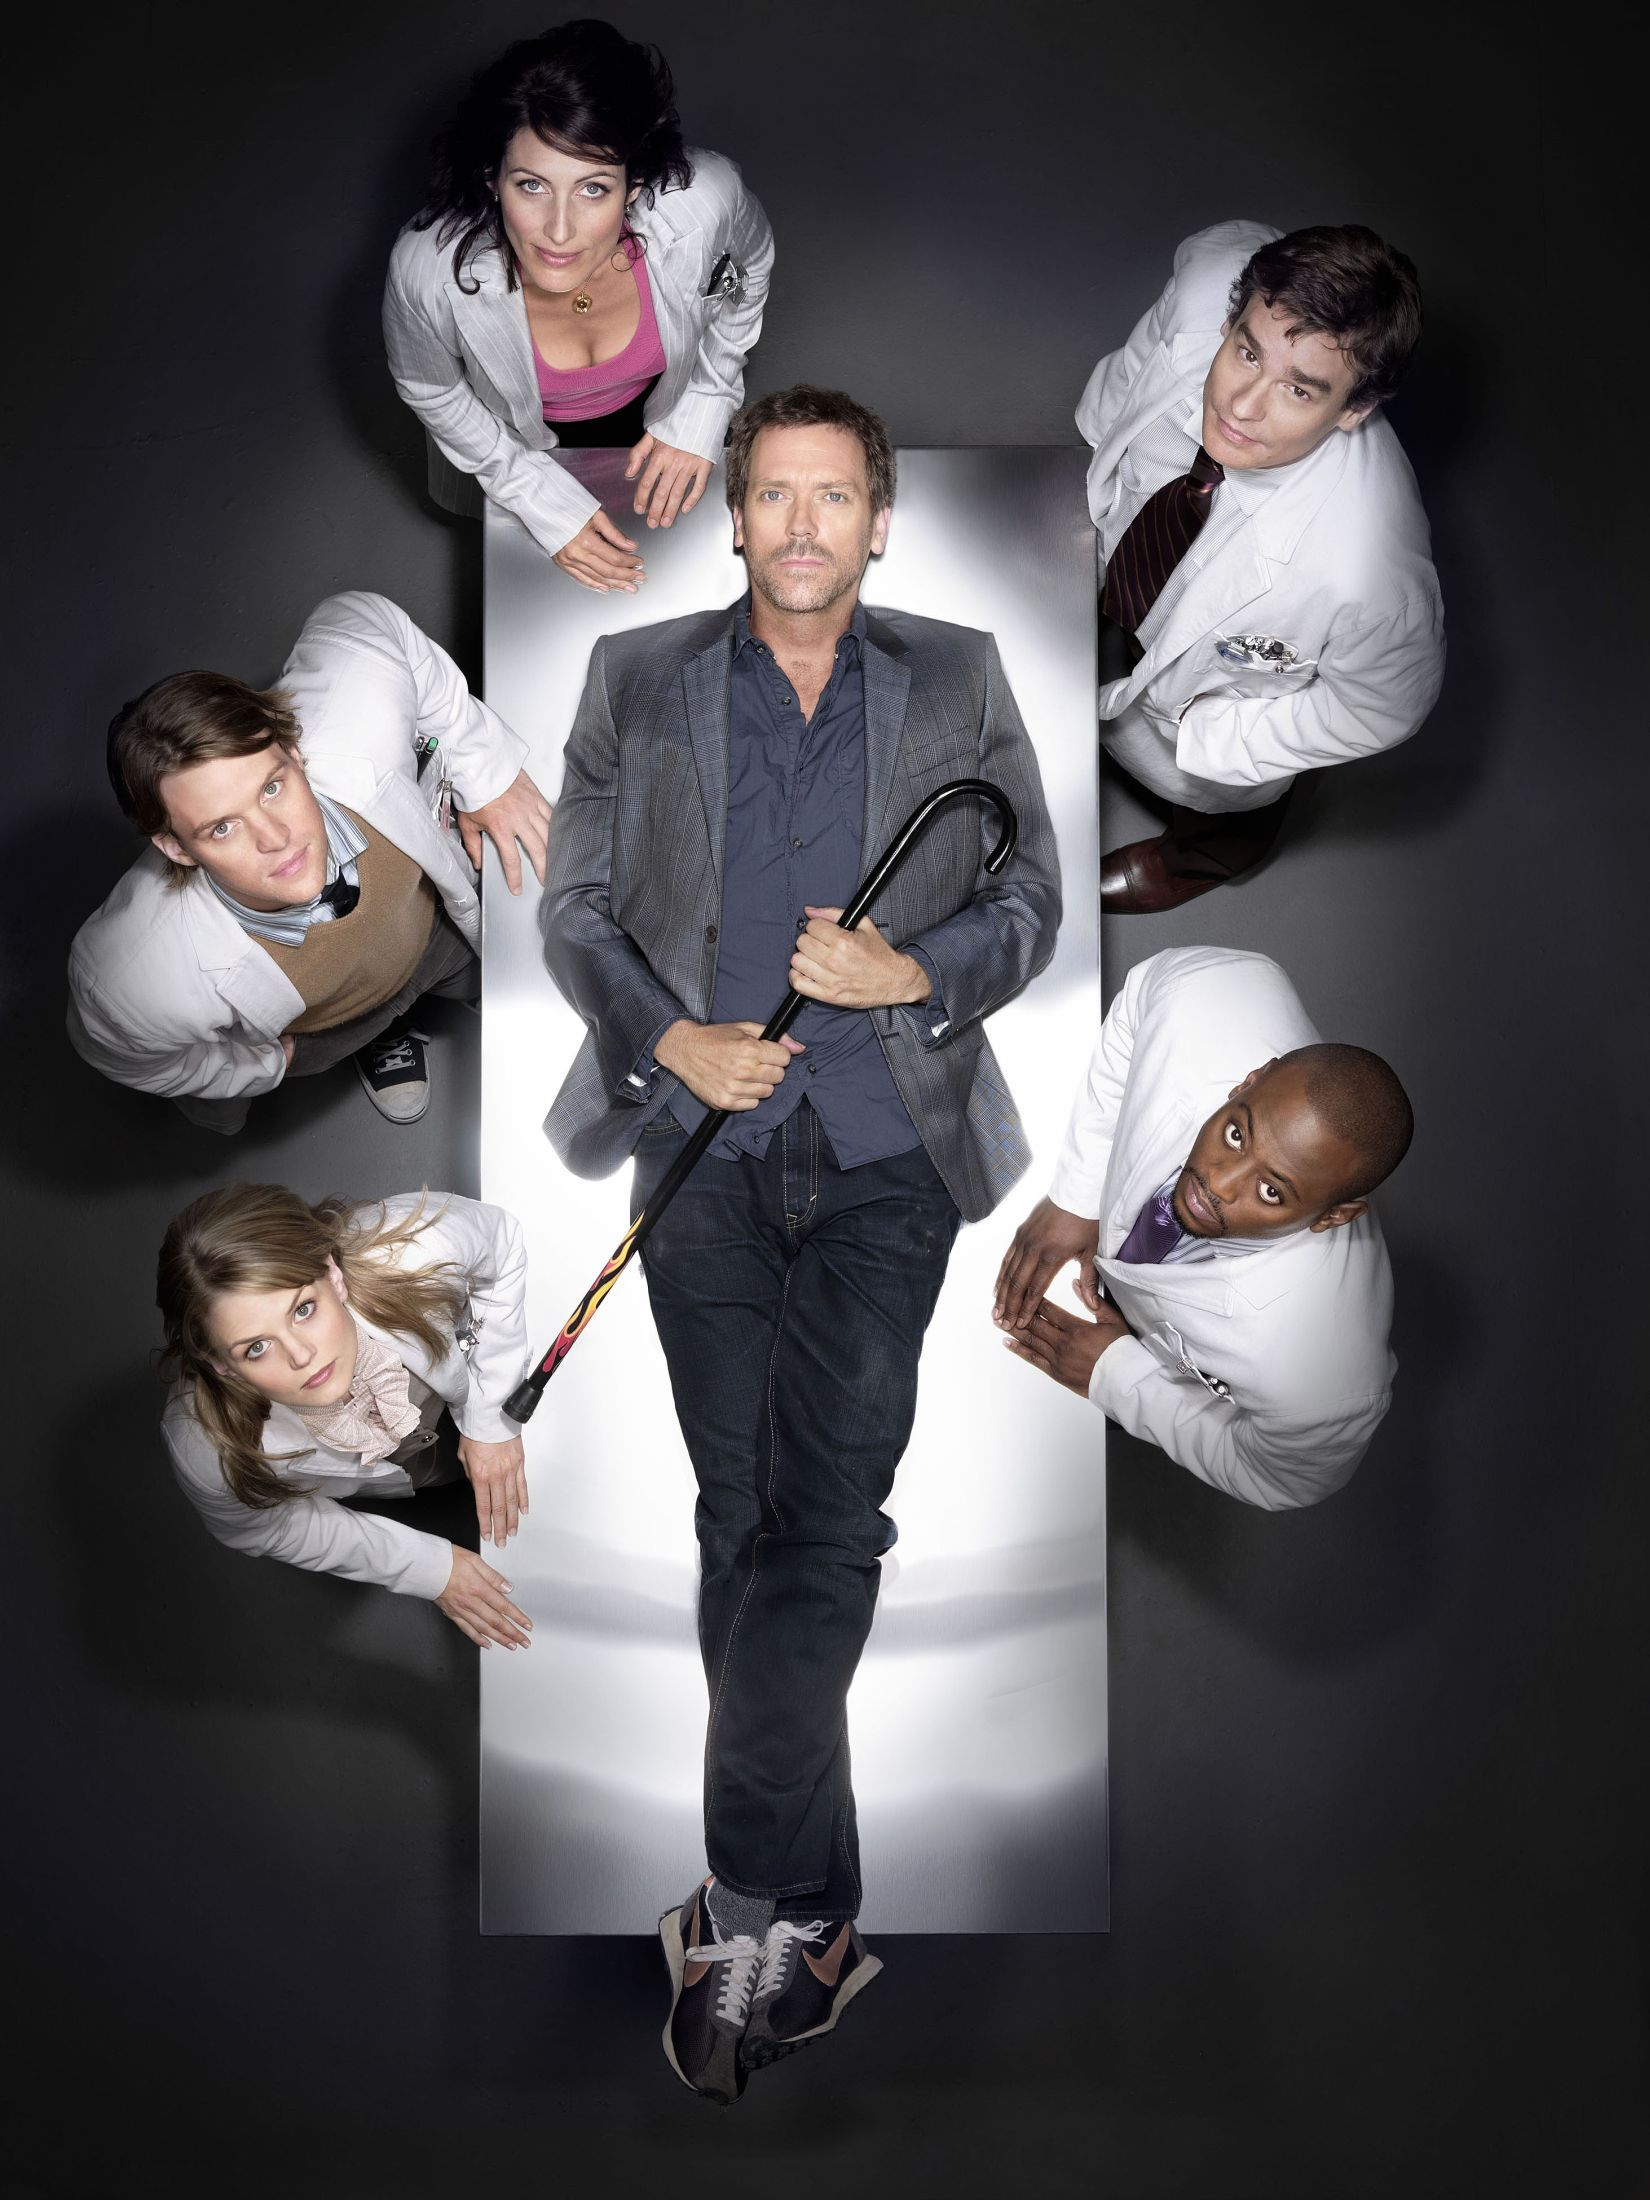 Dr House, Gregory House, Hugh Laurie 映画 ポスター, かっこいい人, 映画